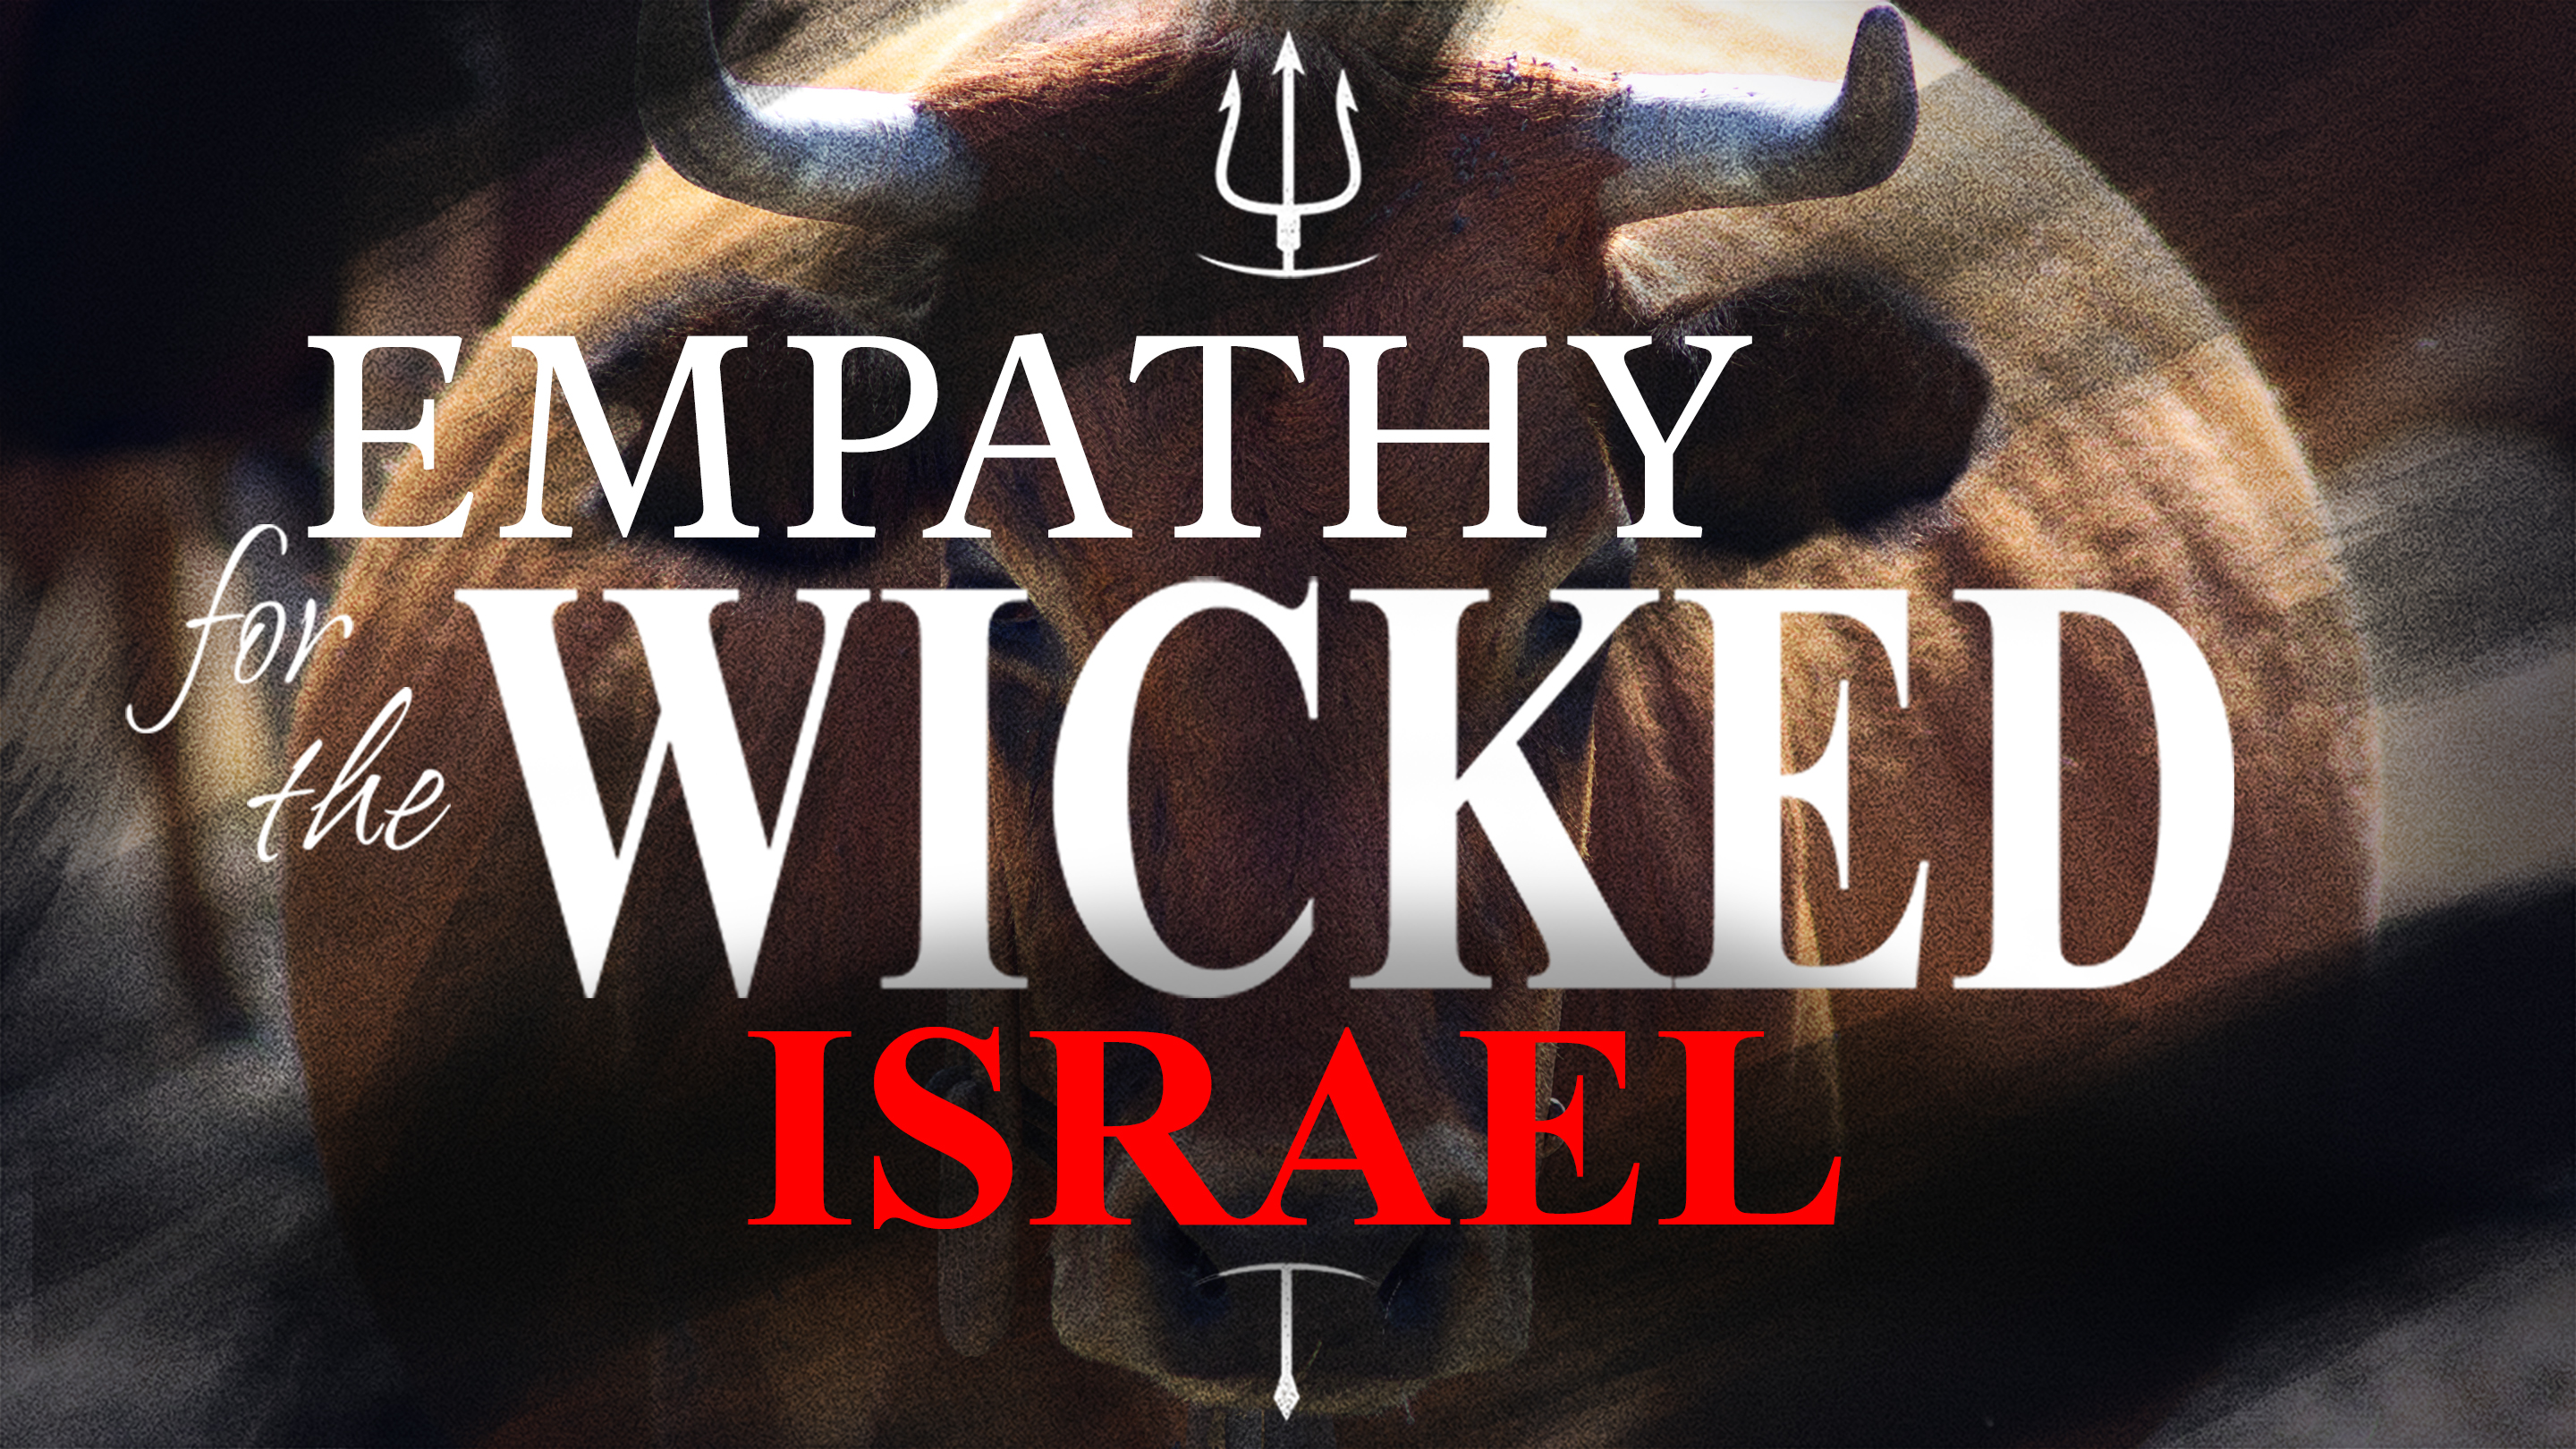 Empathy for the Wicked: ISRAEL